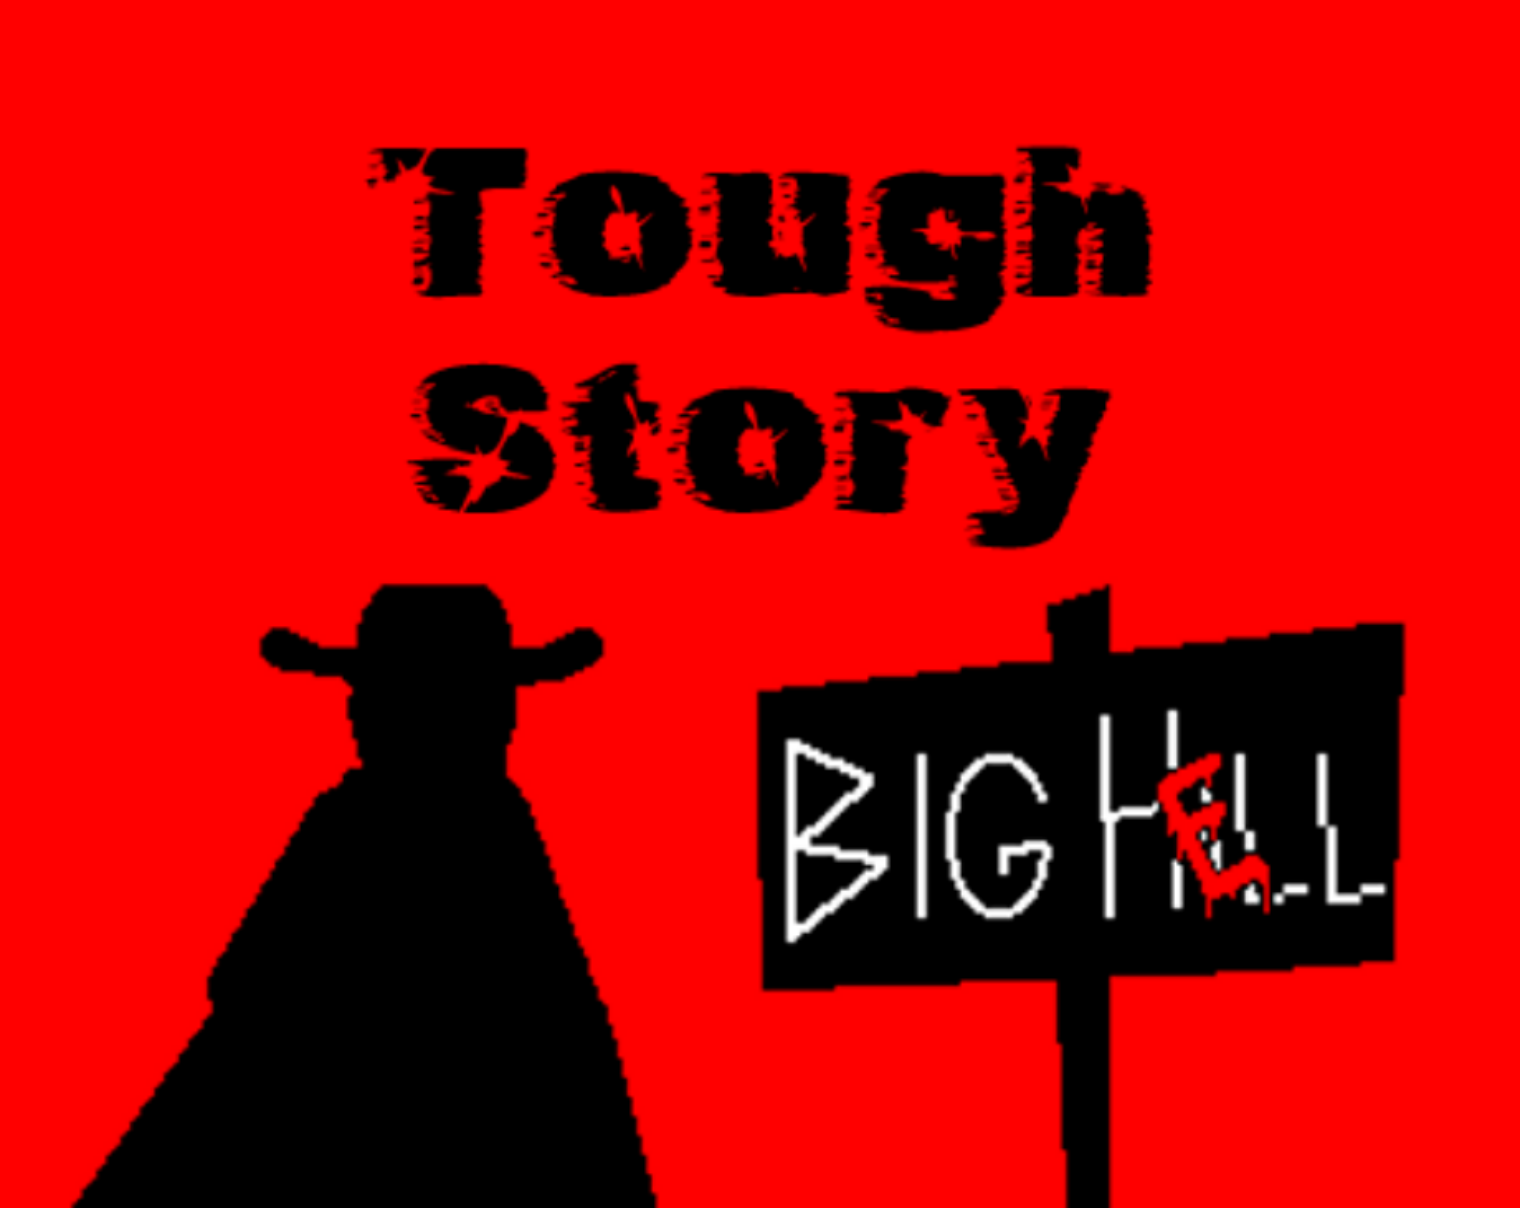 Tough Story (Vol I) - Big Hell